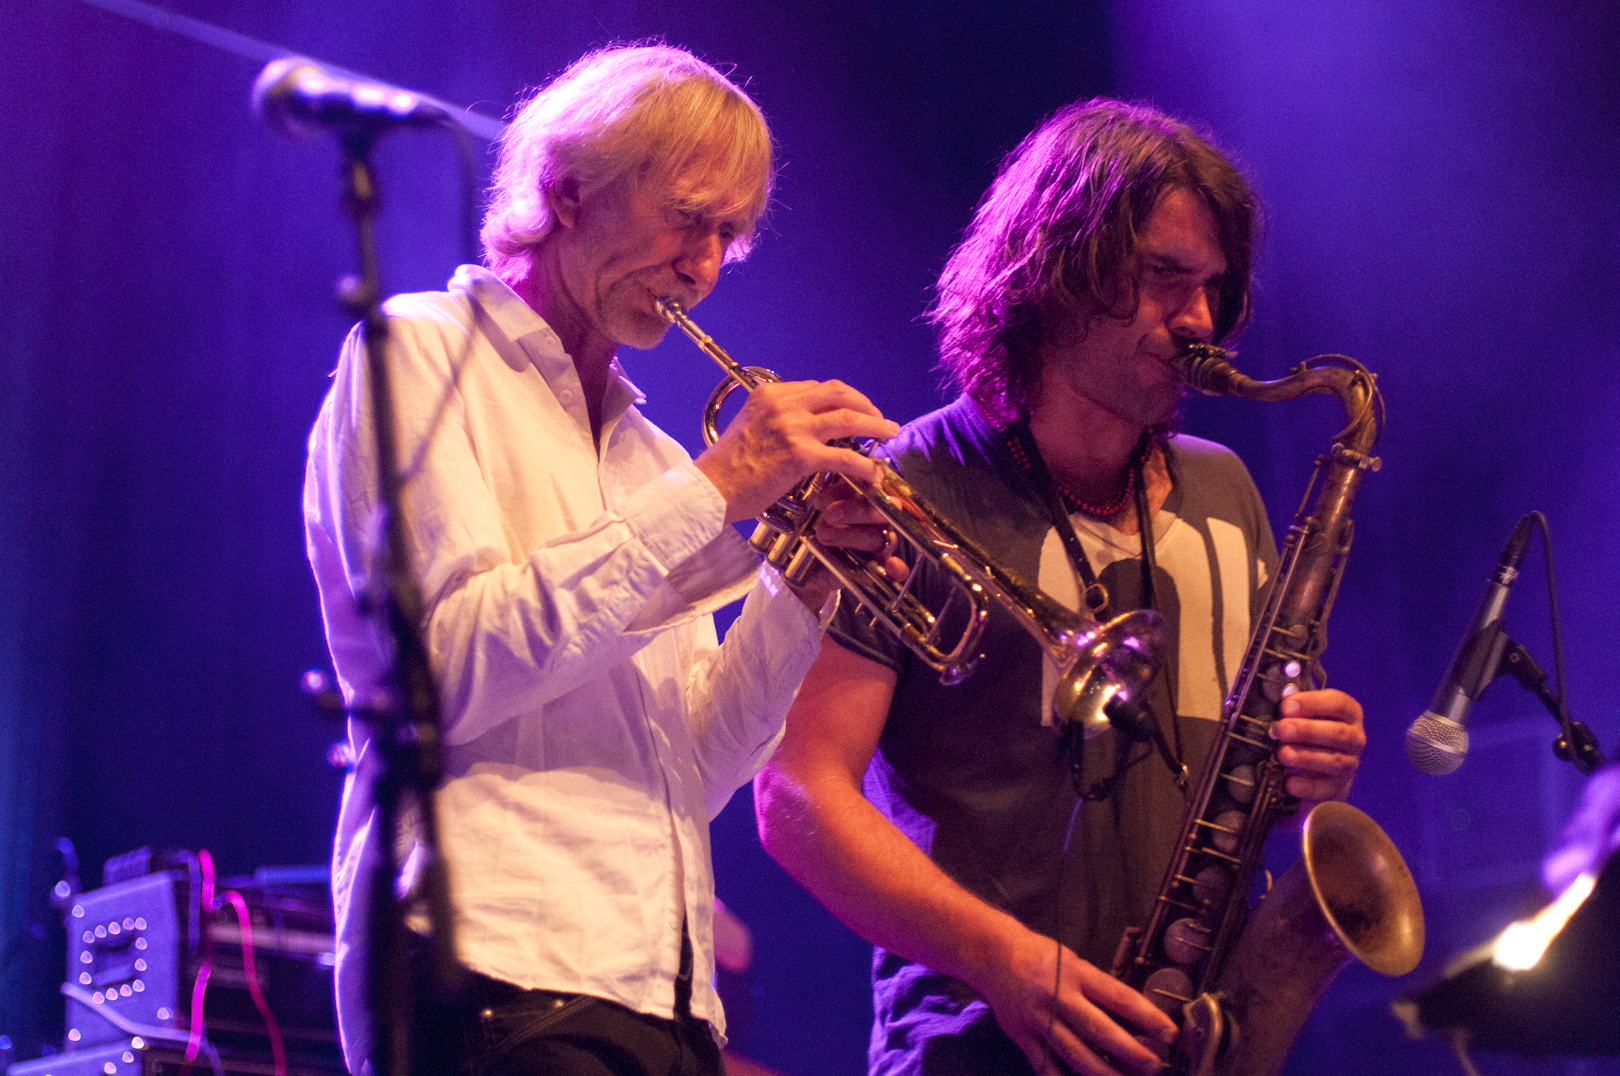 Erik Truffaz and Ilhan Ersahin with Bugge Wesseltoft at the Olso Jazz Festival